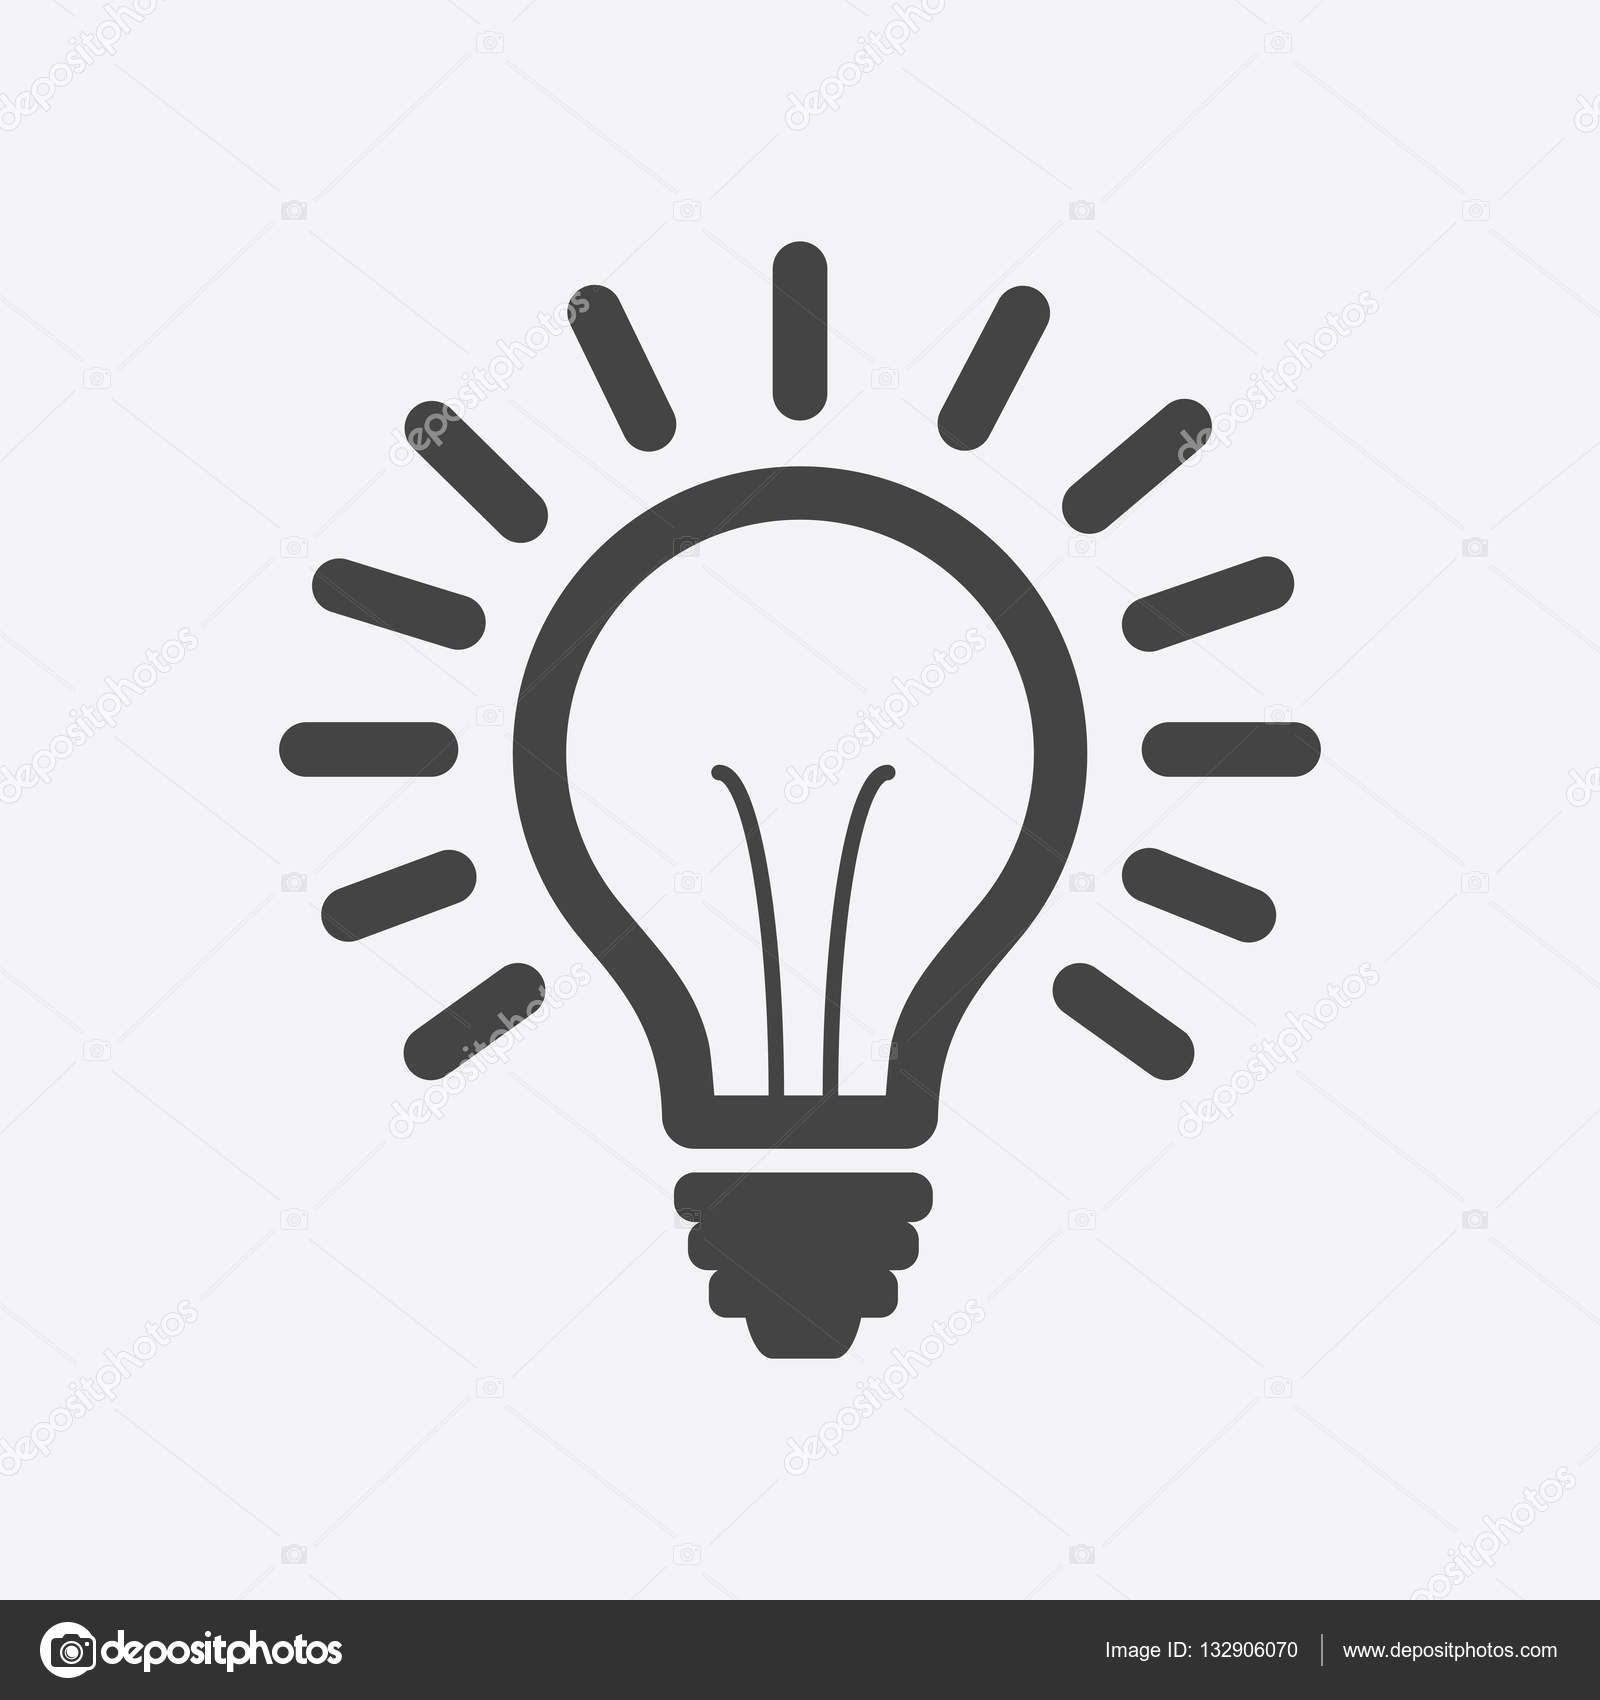 Light Bulb Line Icon Vector Isolated On White Background Idea Sign Solution Thinking Concept Lighting Electric Lamp Illustration In Flat Style For